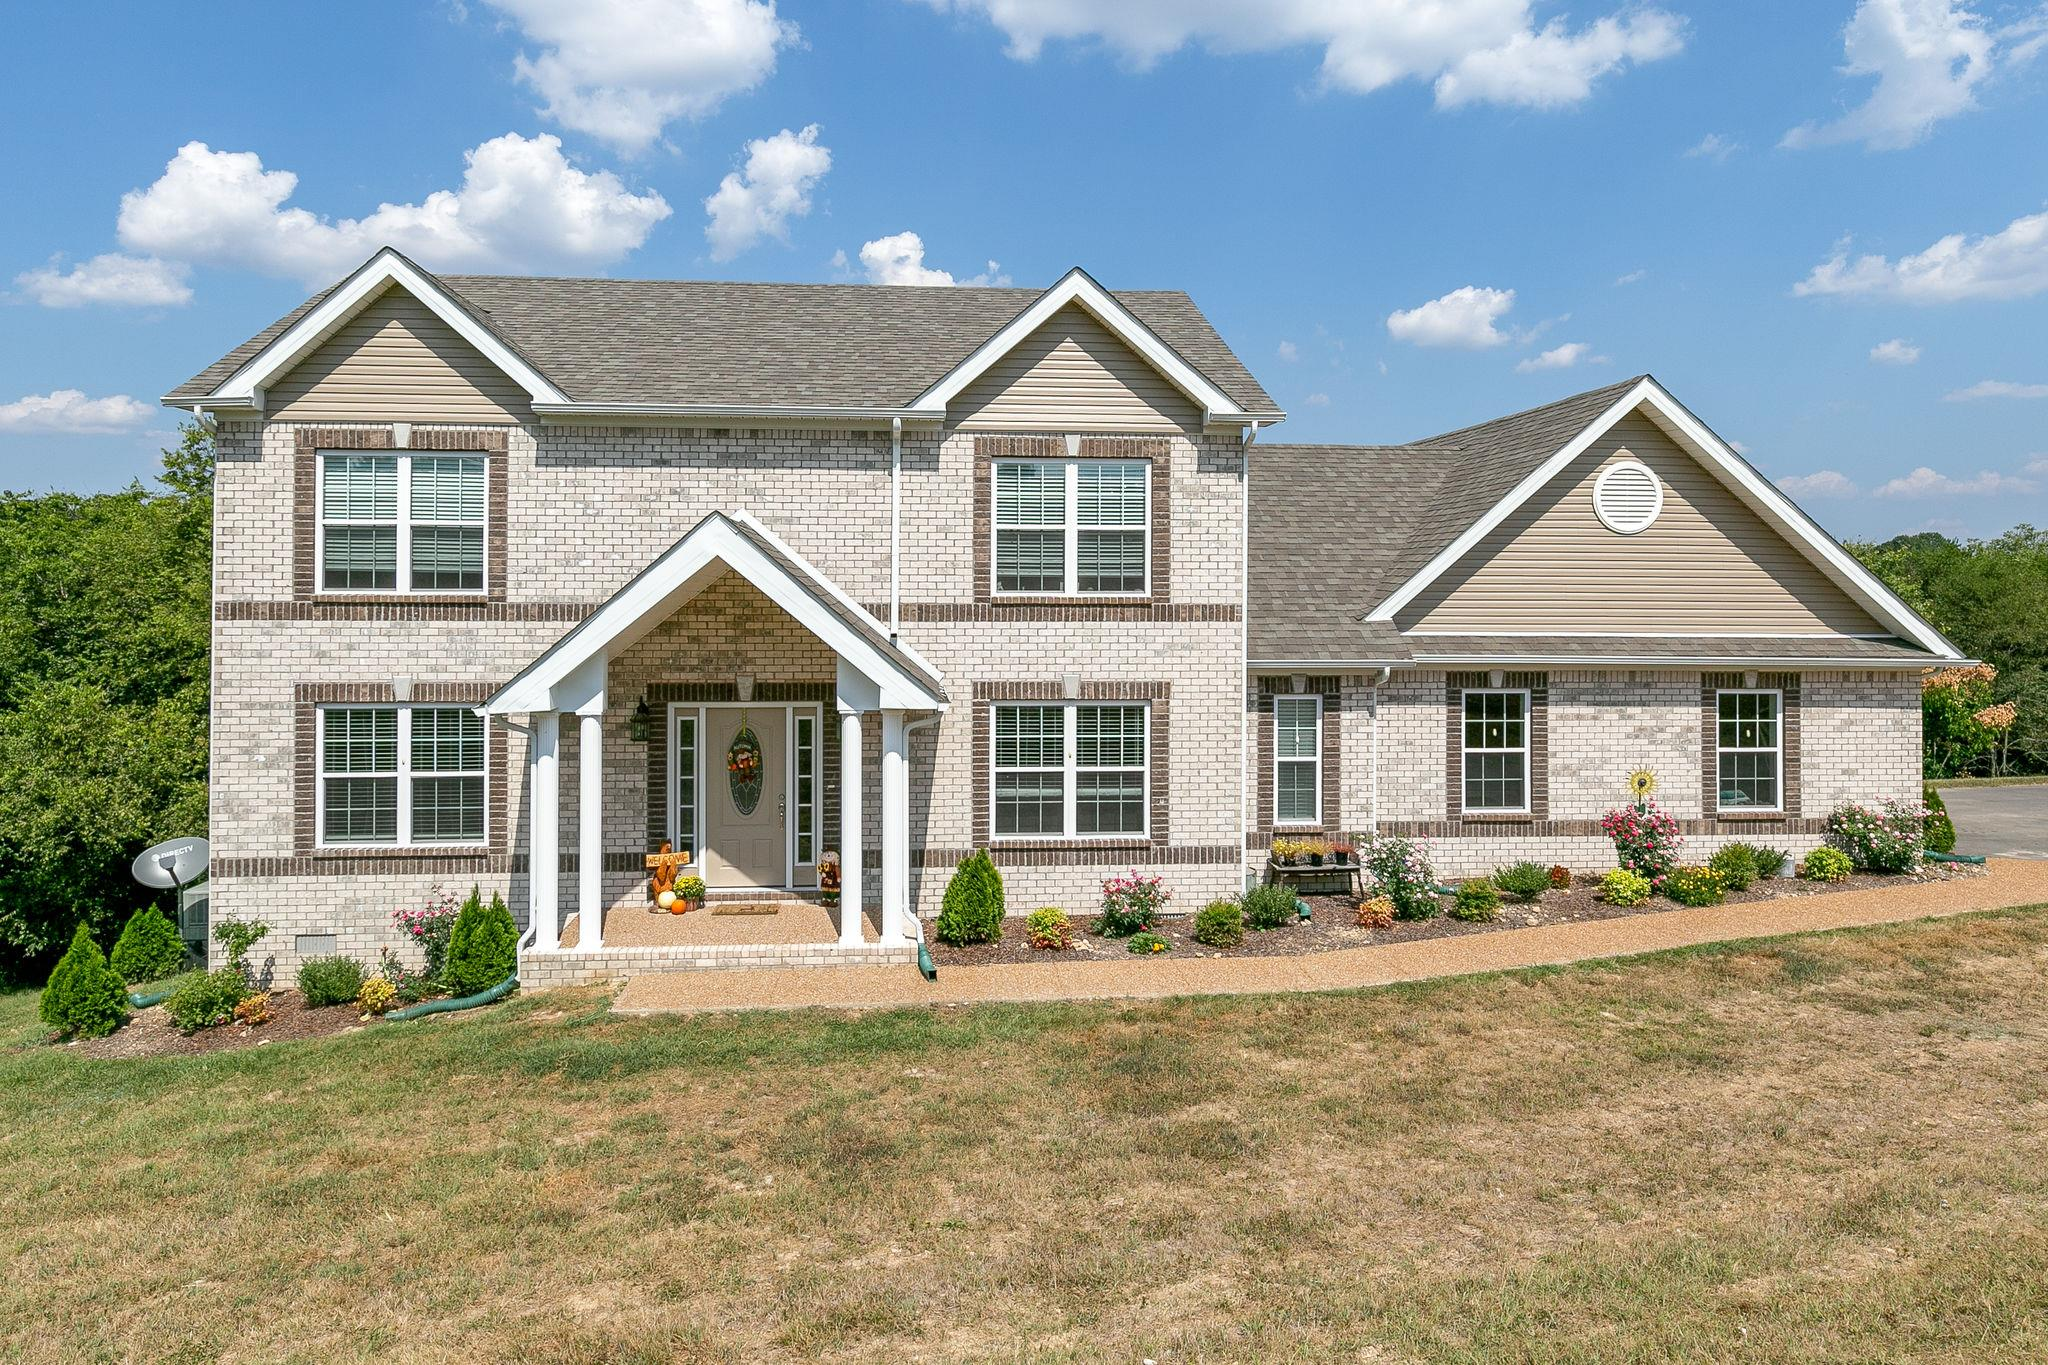 1532 Heller Ridge, Spring Hill, TN 37174 - Spring Hill, TN real estate listing